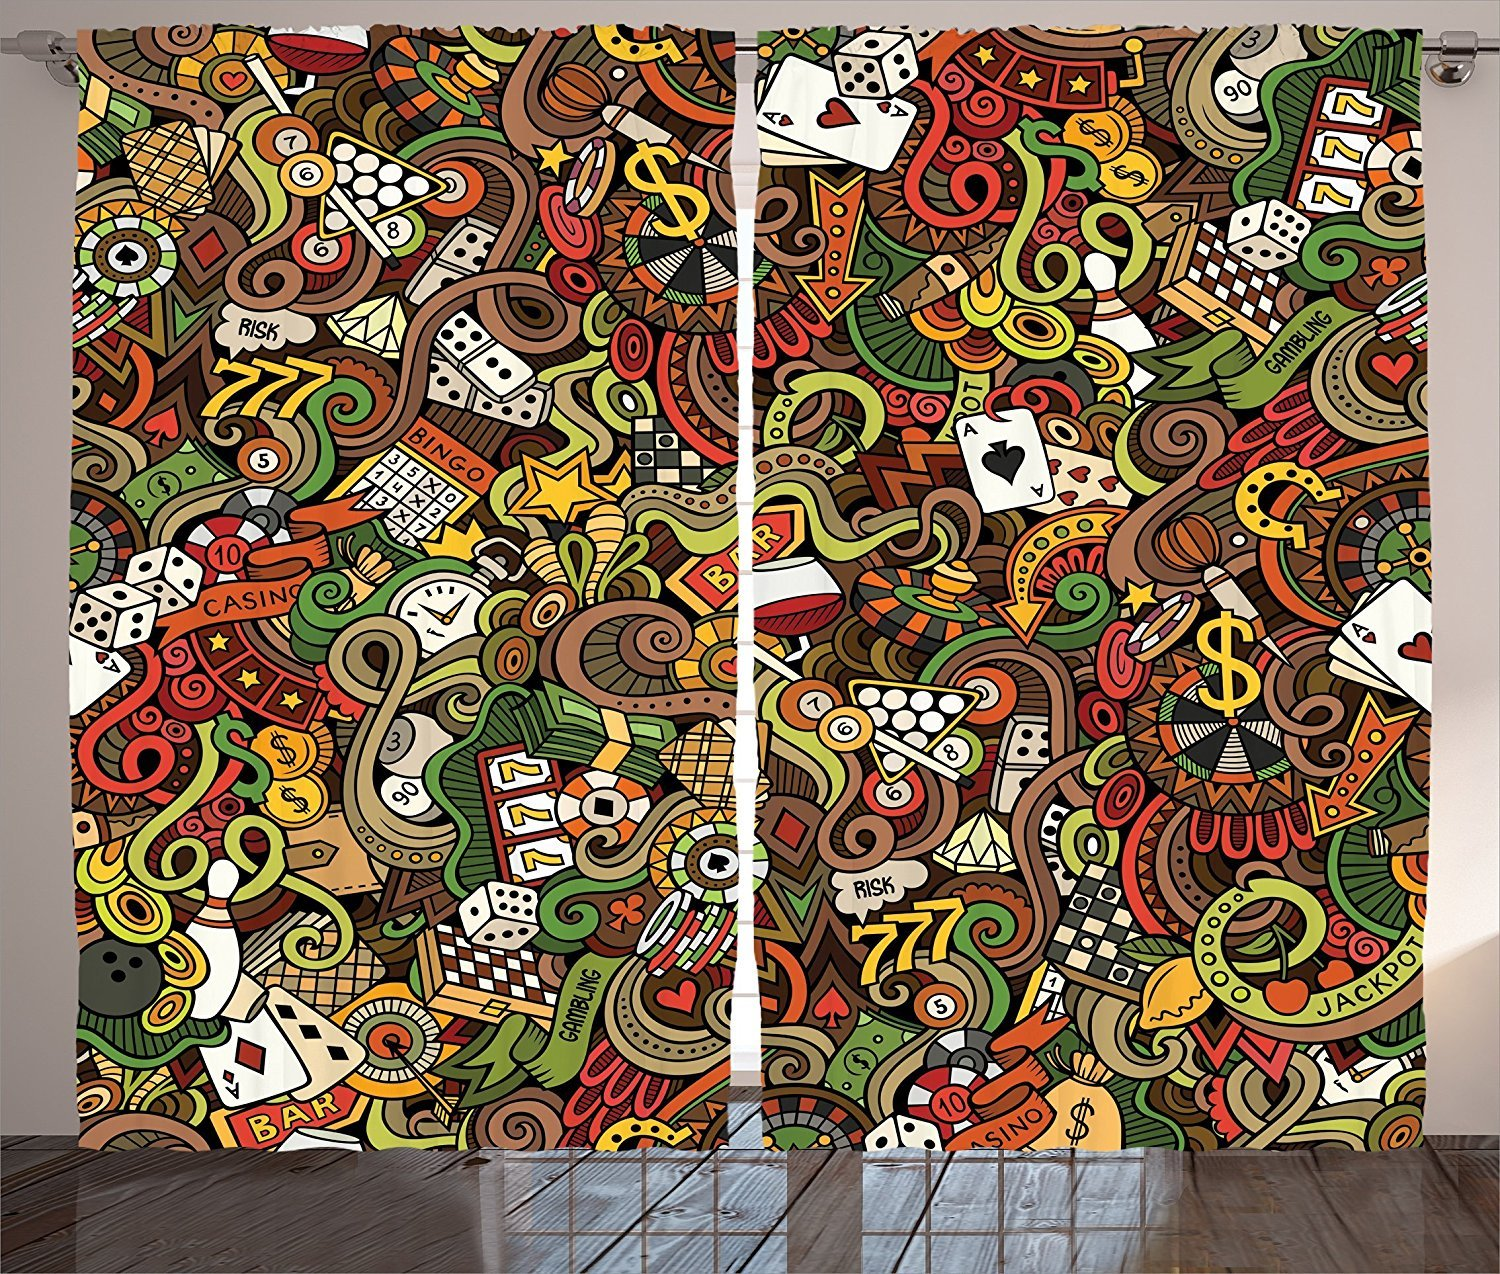 Casino Decorations Curtains Doodles Style Art Bingo Excitement Checkers King Tambourine Vegas Living Room Bedroom Decor 2 Panel Set by sophiehome